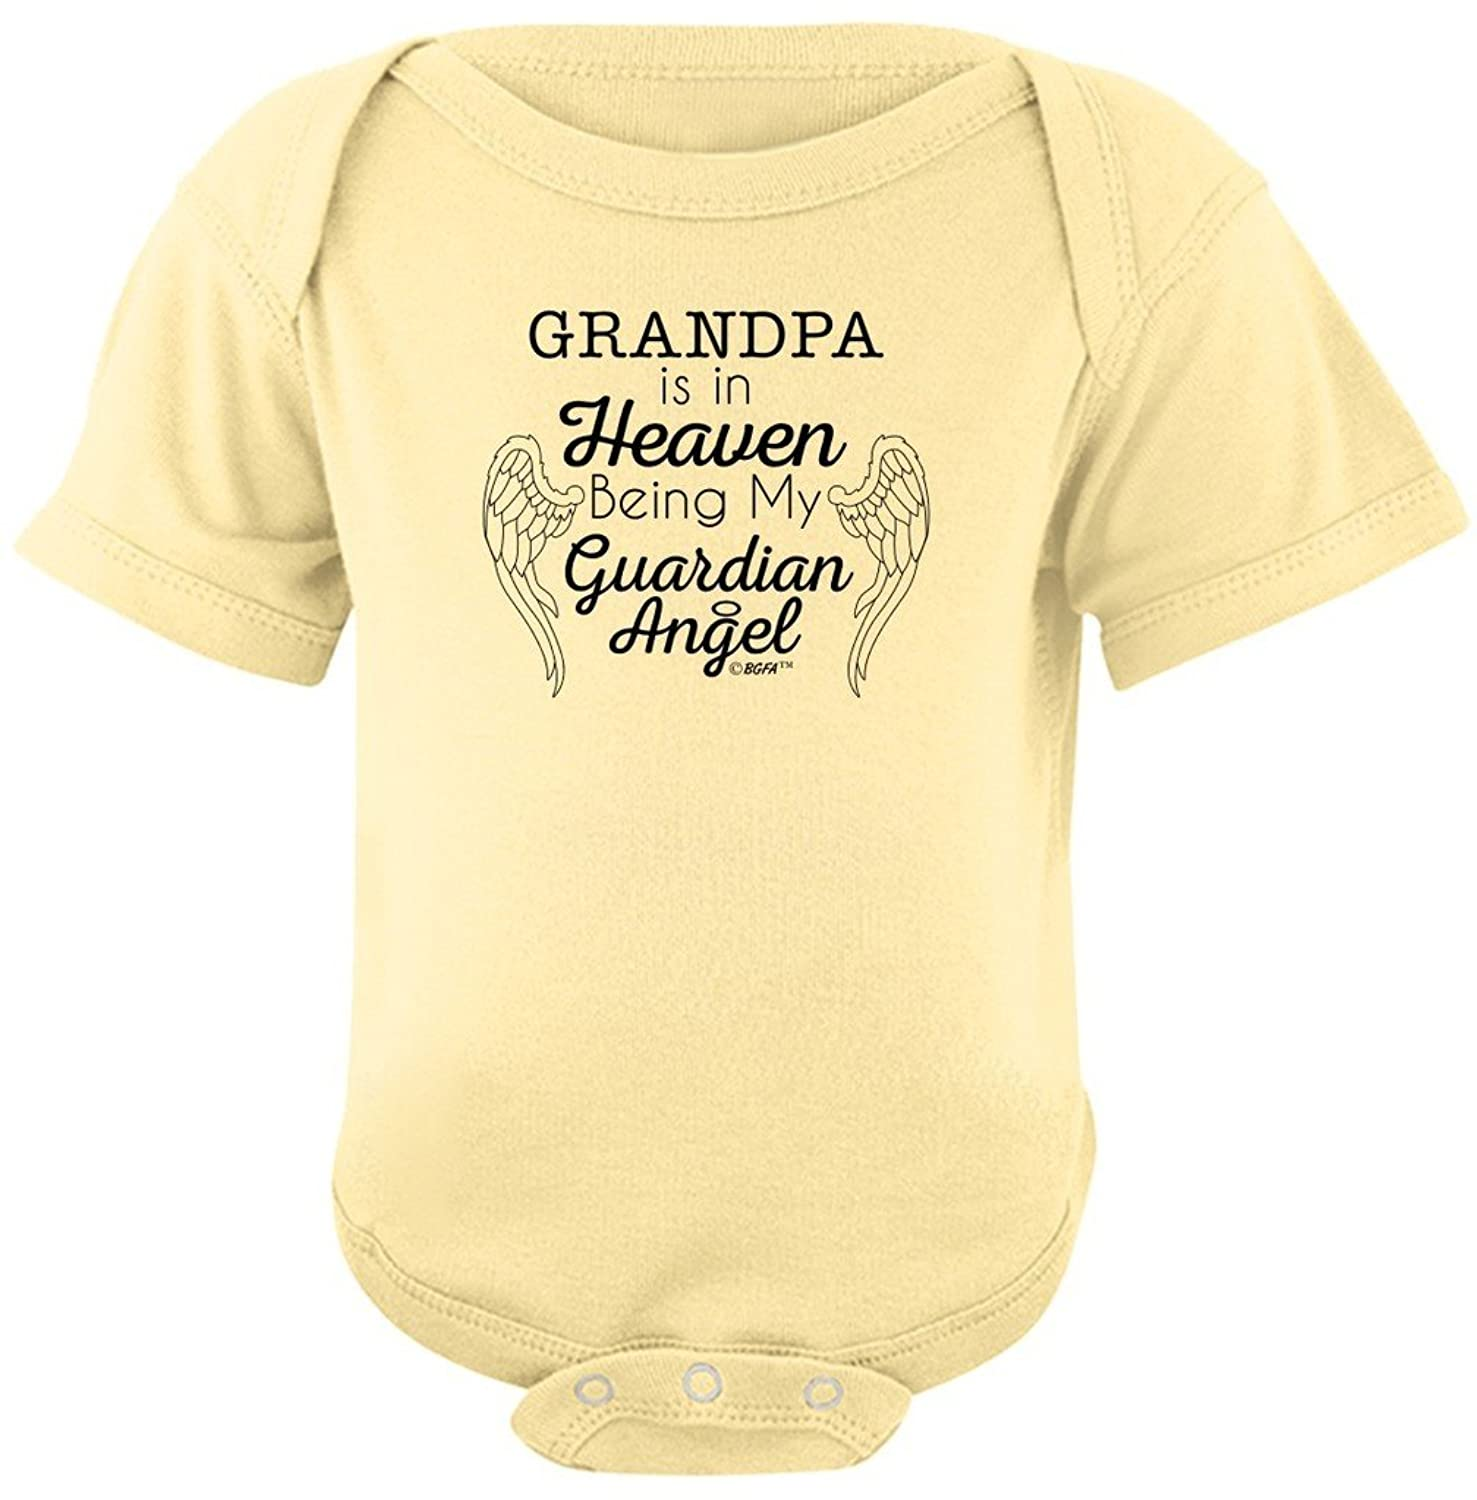 Amazon Baby Gifts For All Grandpa in Heaven Being Guardian